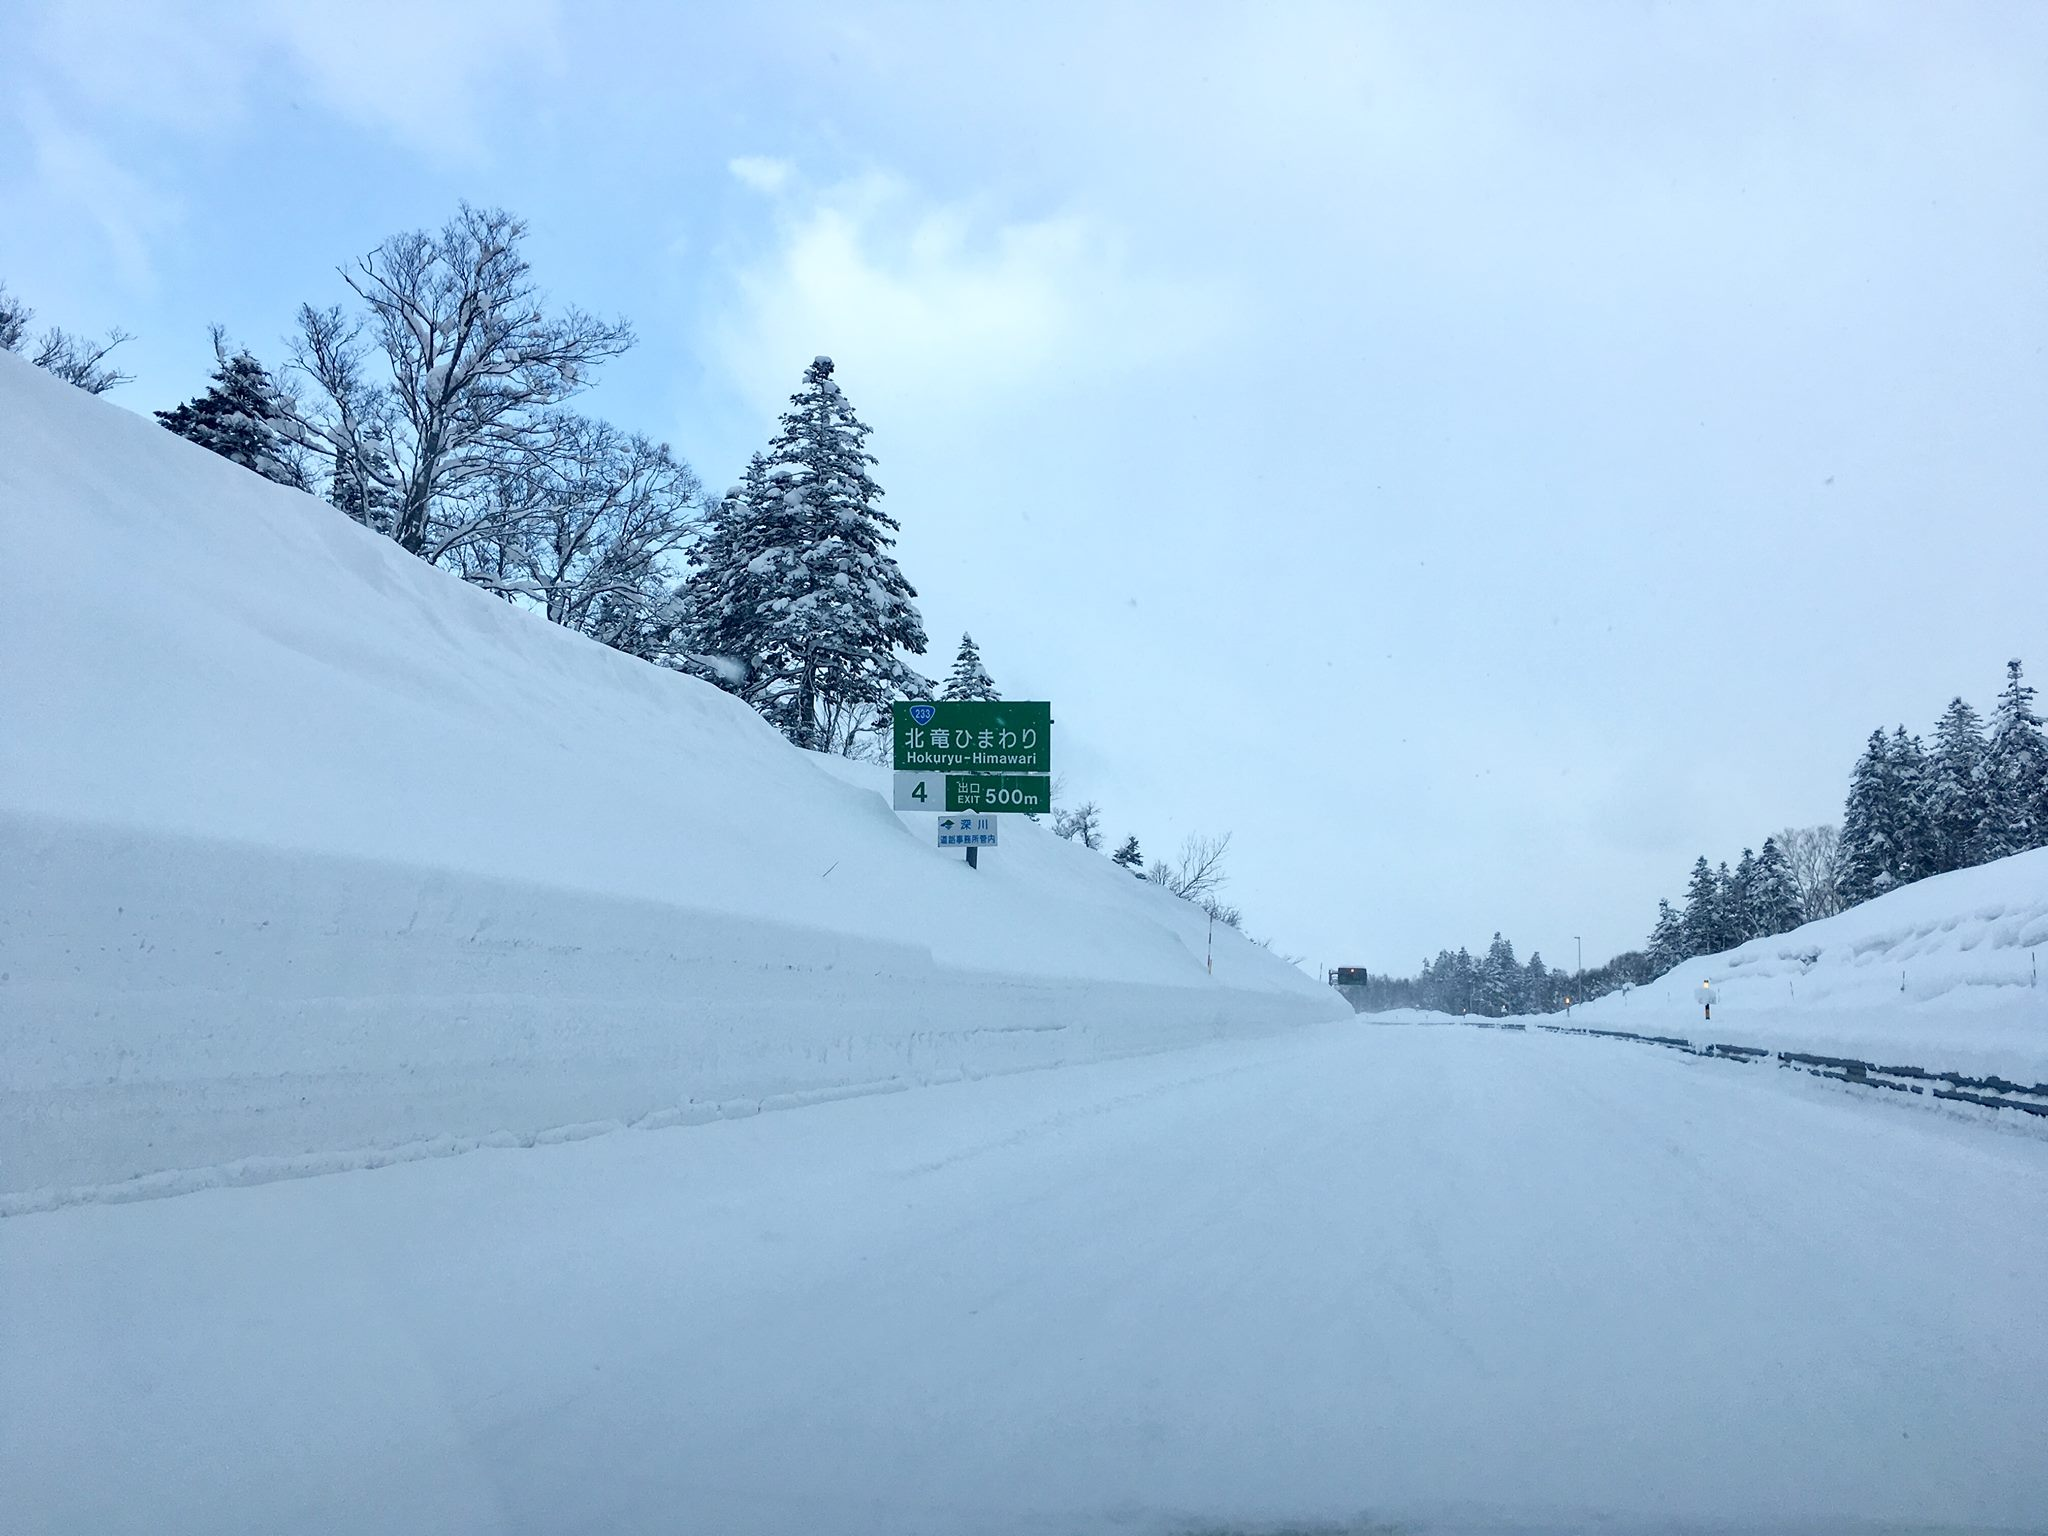 Huge snow banks along the highway and no asphalt to be seen.